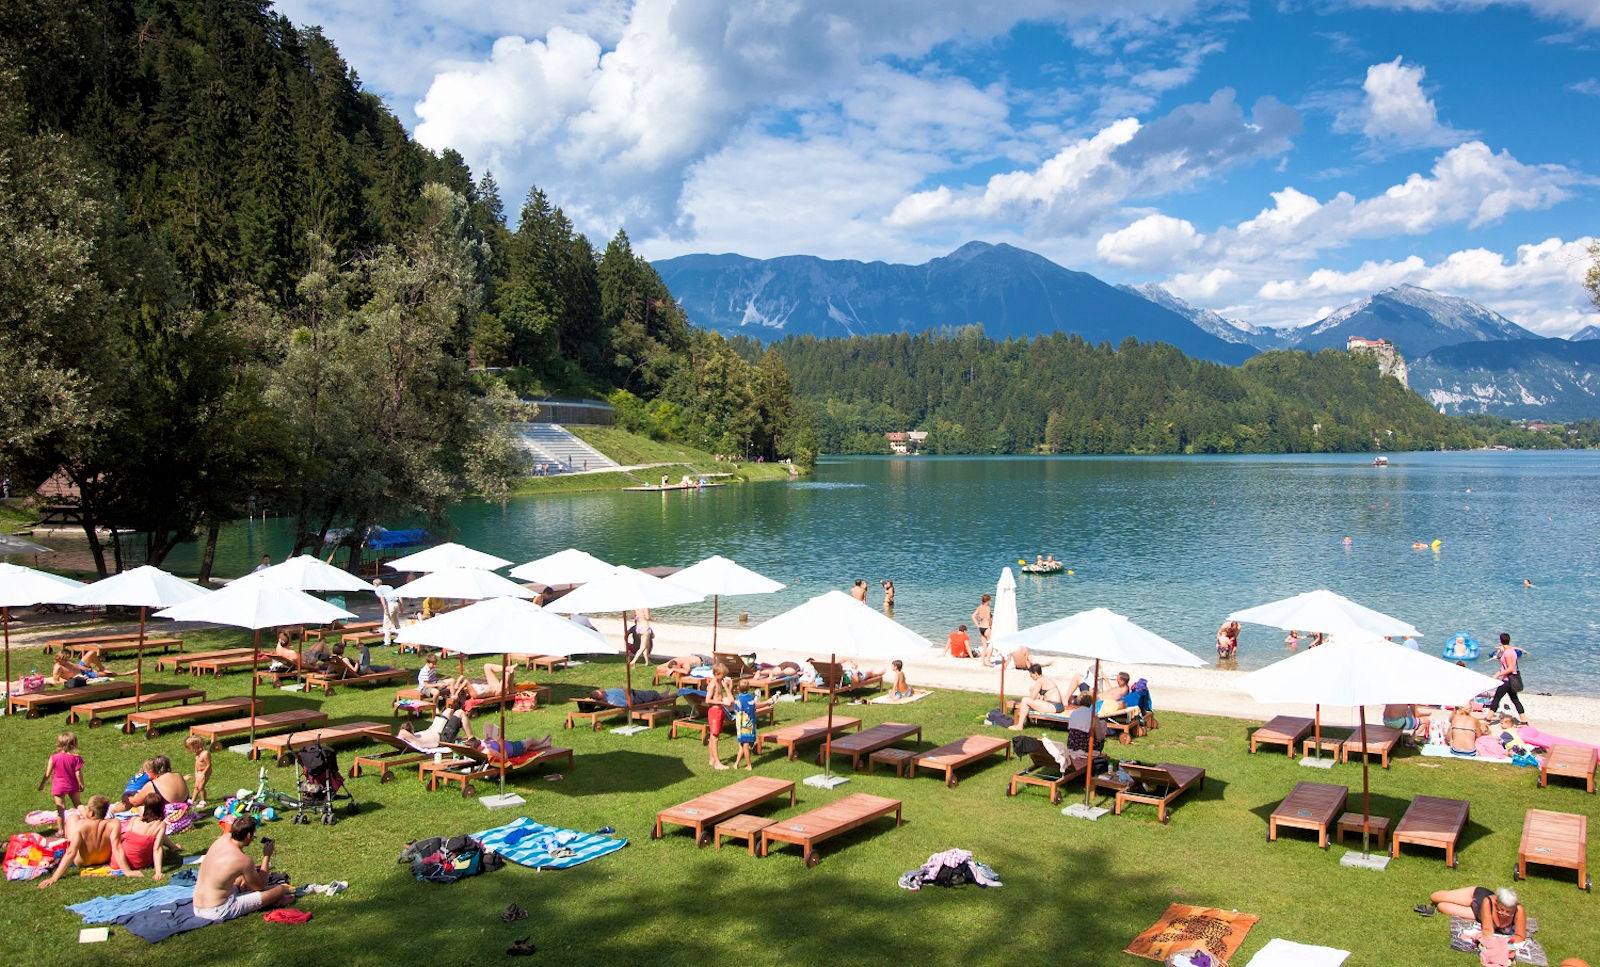 Velika Zaka Bathing Area in Lake Bled, Slovenia